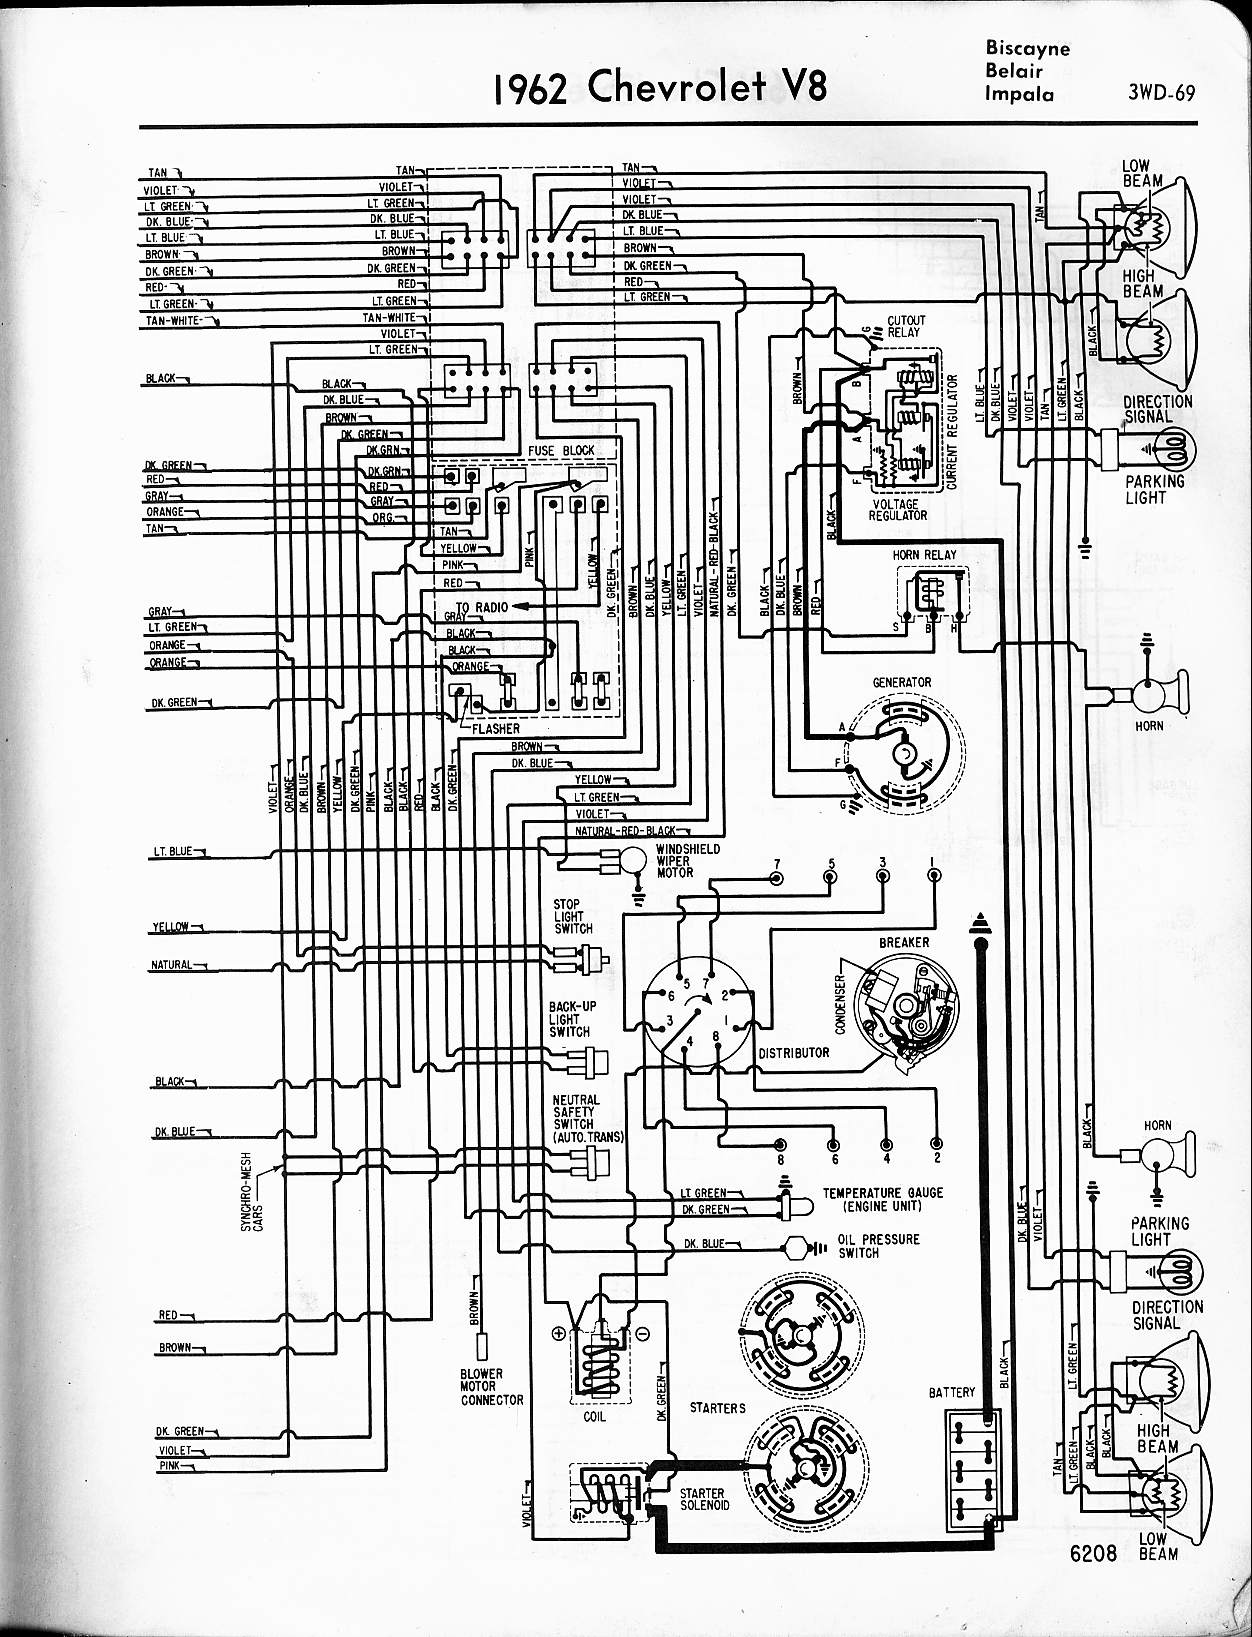 1970 Chevy Impala Wiring Diagrams Reveolution Of Diagram 2010 Silverado Engine 62 Detailed Schematics Rh Jppastryarts Com 1965